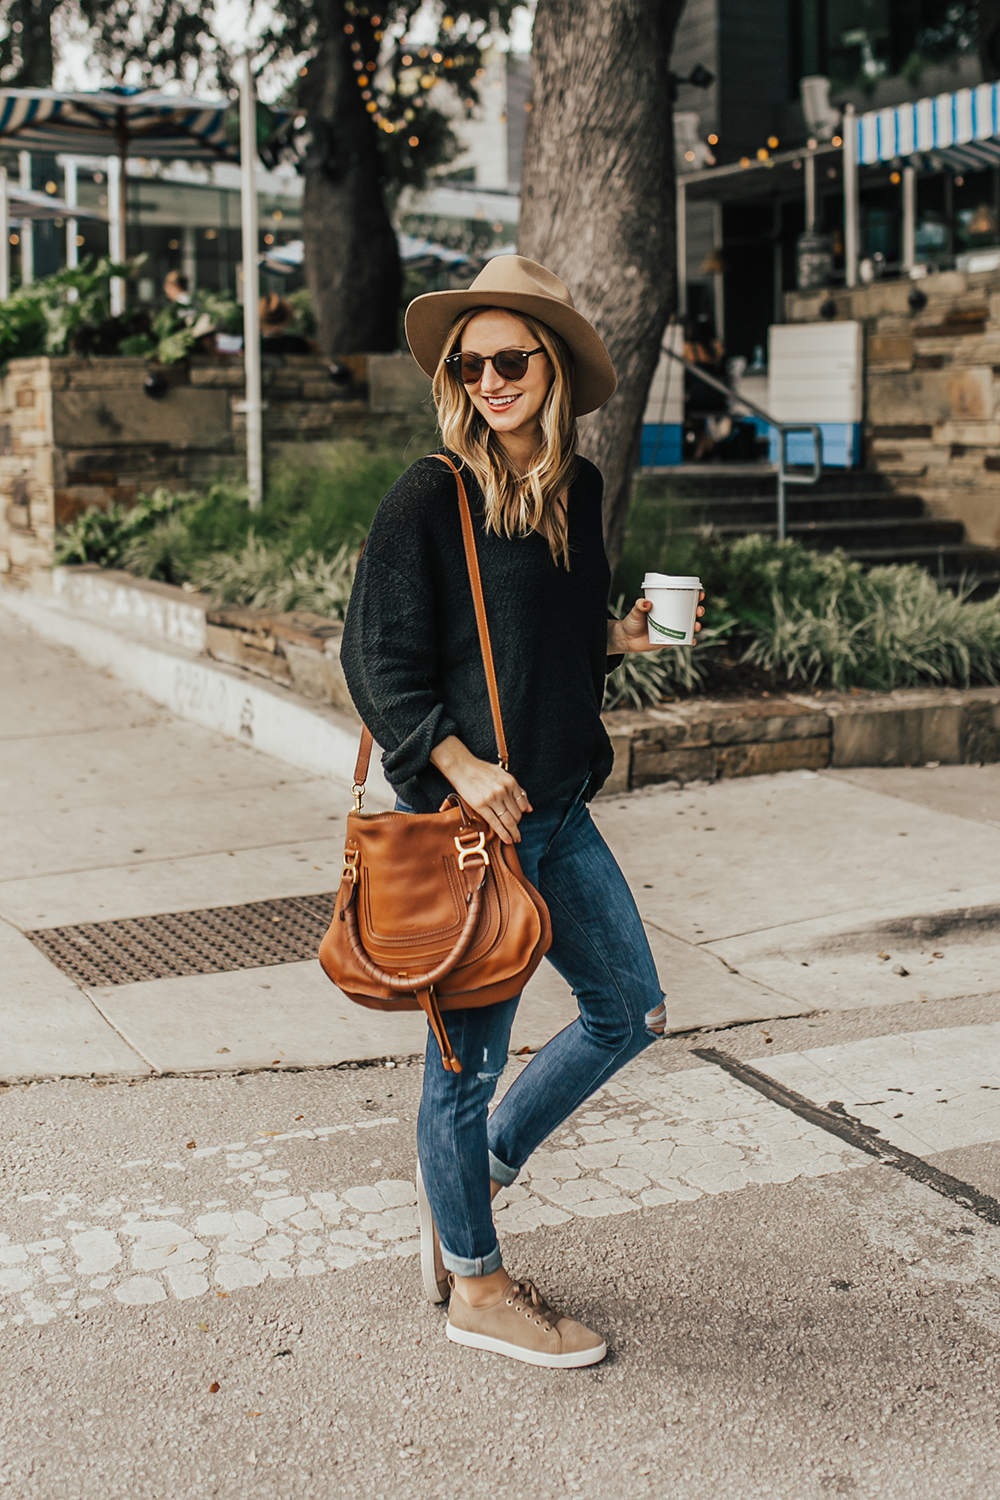 livvyland-blog-olivia-watson-austin-texas-fashion-style-blogger-koolaburra-ugg-taupe-suede-sneakers-fall-outfit-7